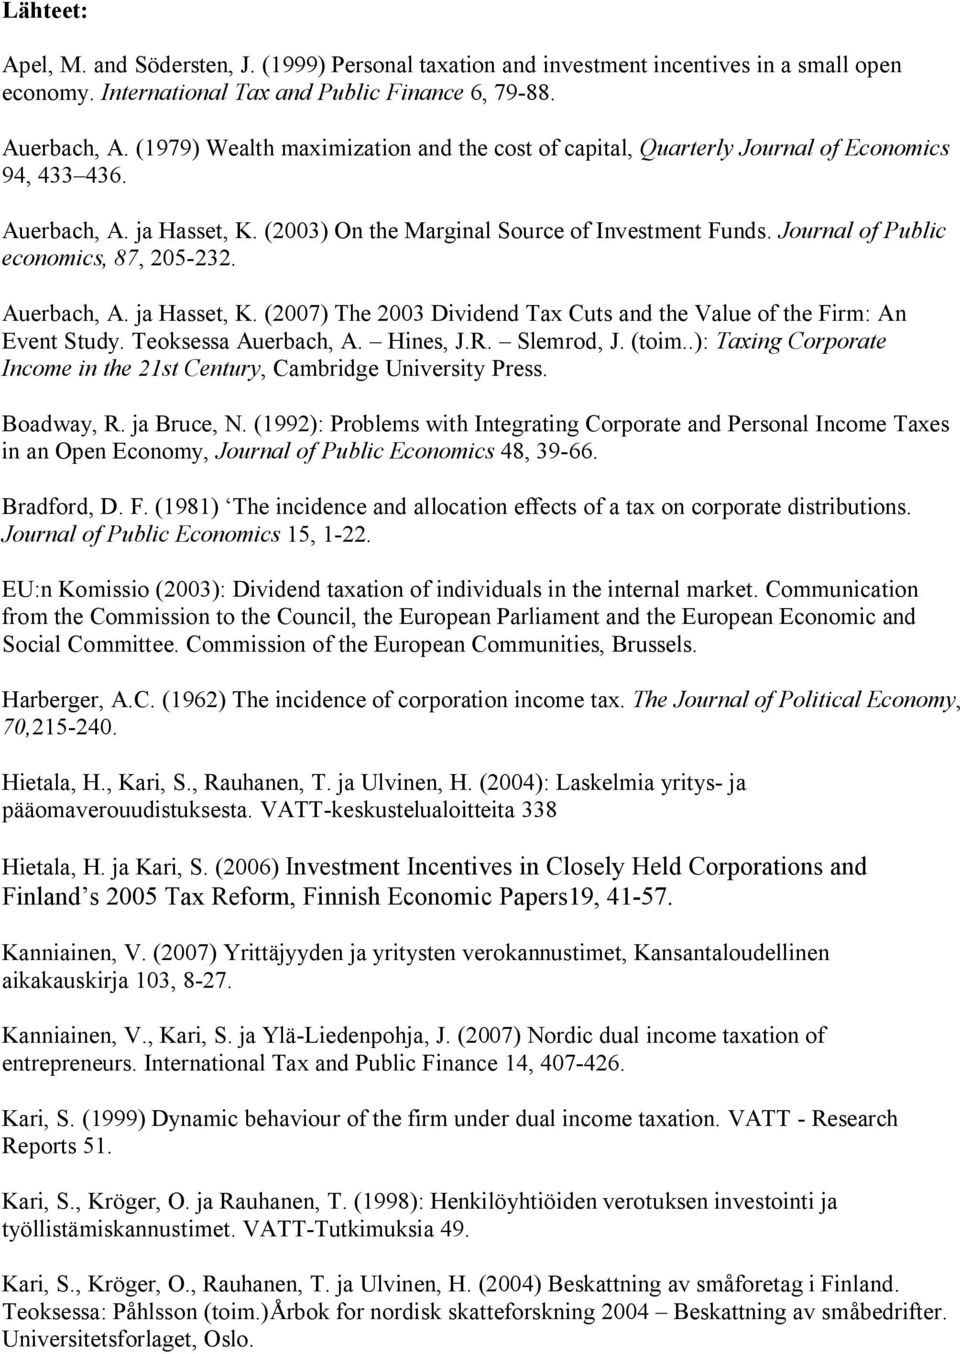 Journal of Public economics, 87, 205-232. Auerbach, A. ja Hasset, K. (2007) The 2003 Dividend Tax Cuts and the Value of the Firm: An Event Study. Teoksessa Auerbach, A. Hines, J.R. Slemrod, J. (toim.